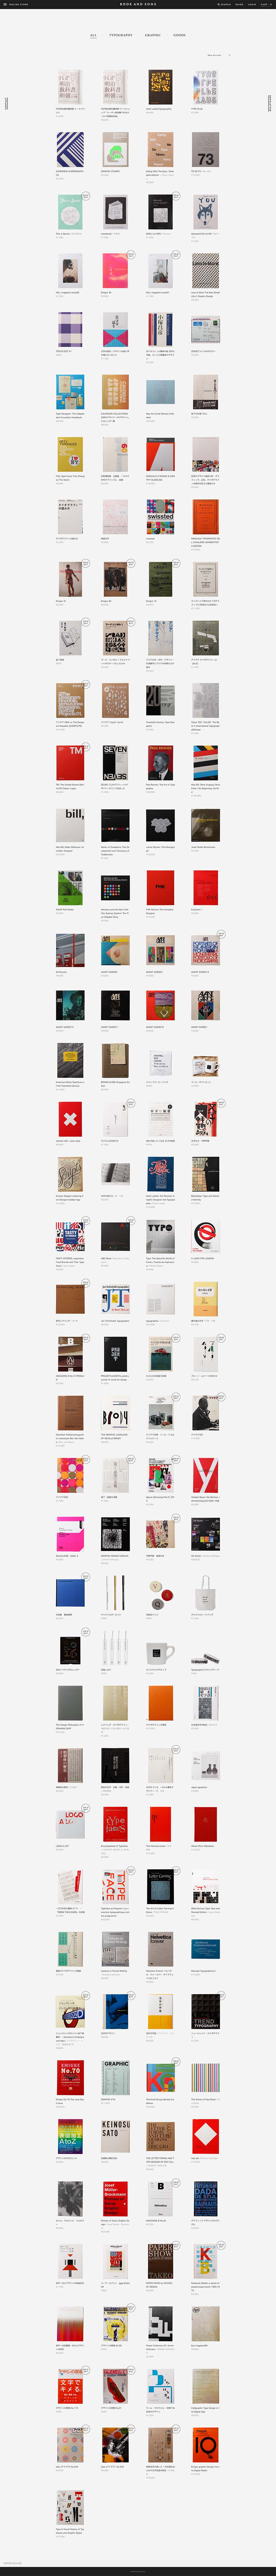 BOOK AND SONS ONLINE STORE